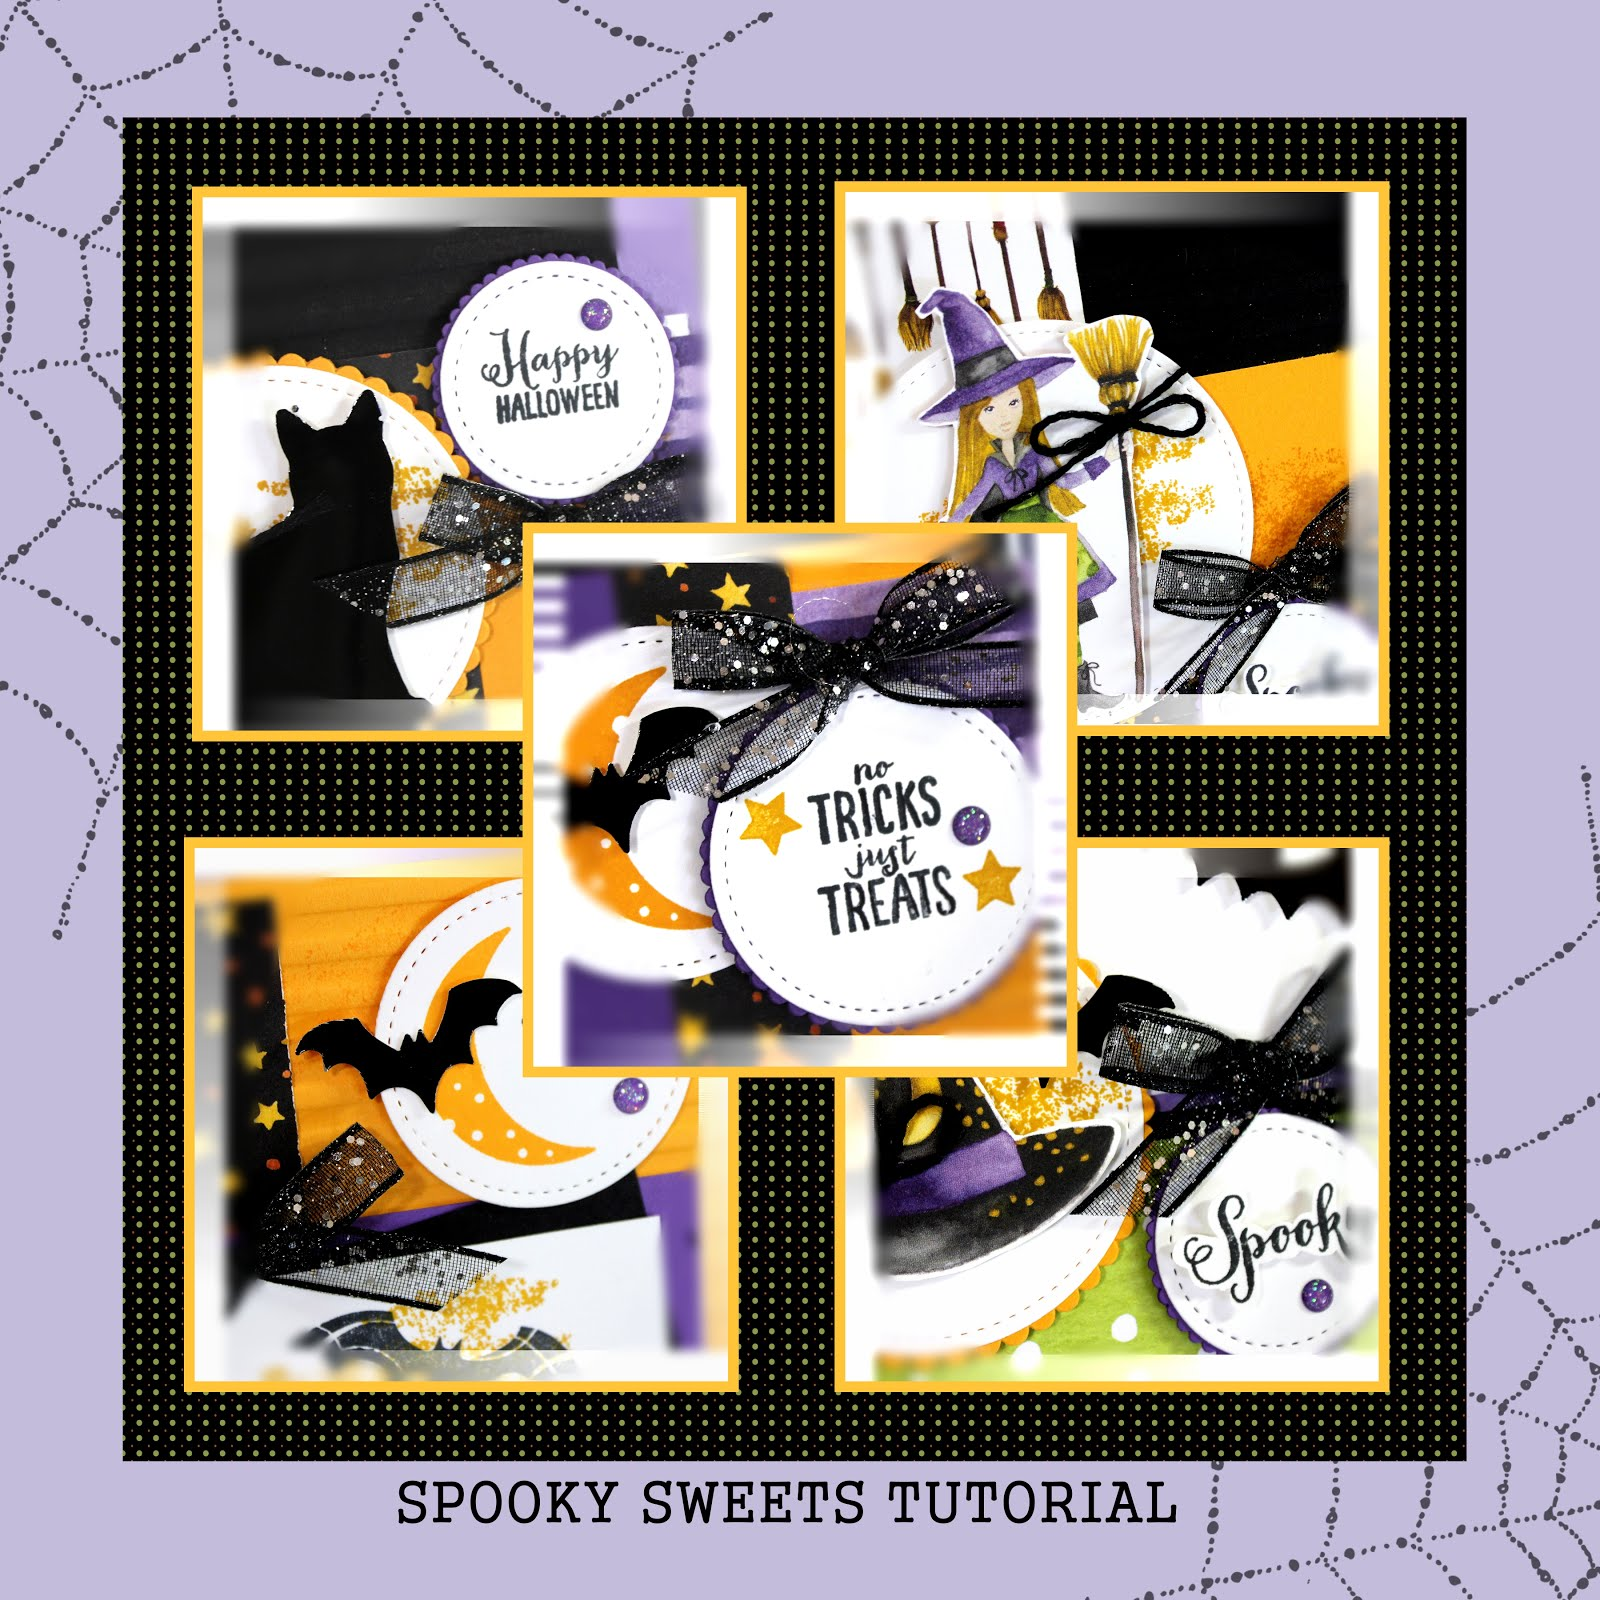 September 2018 Spooky Sweets Tutorial